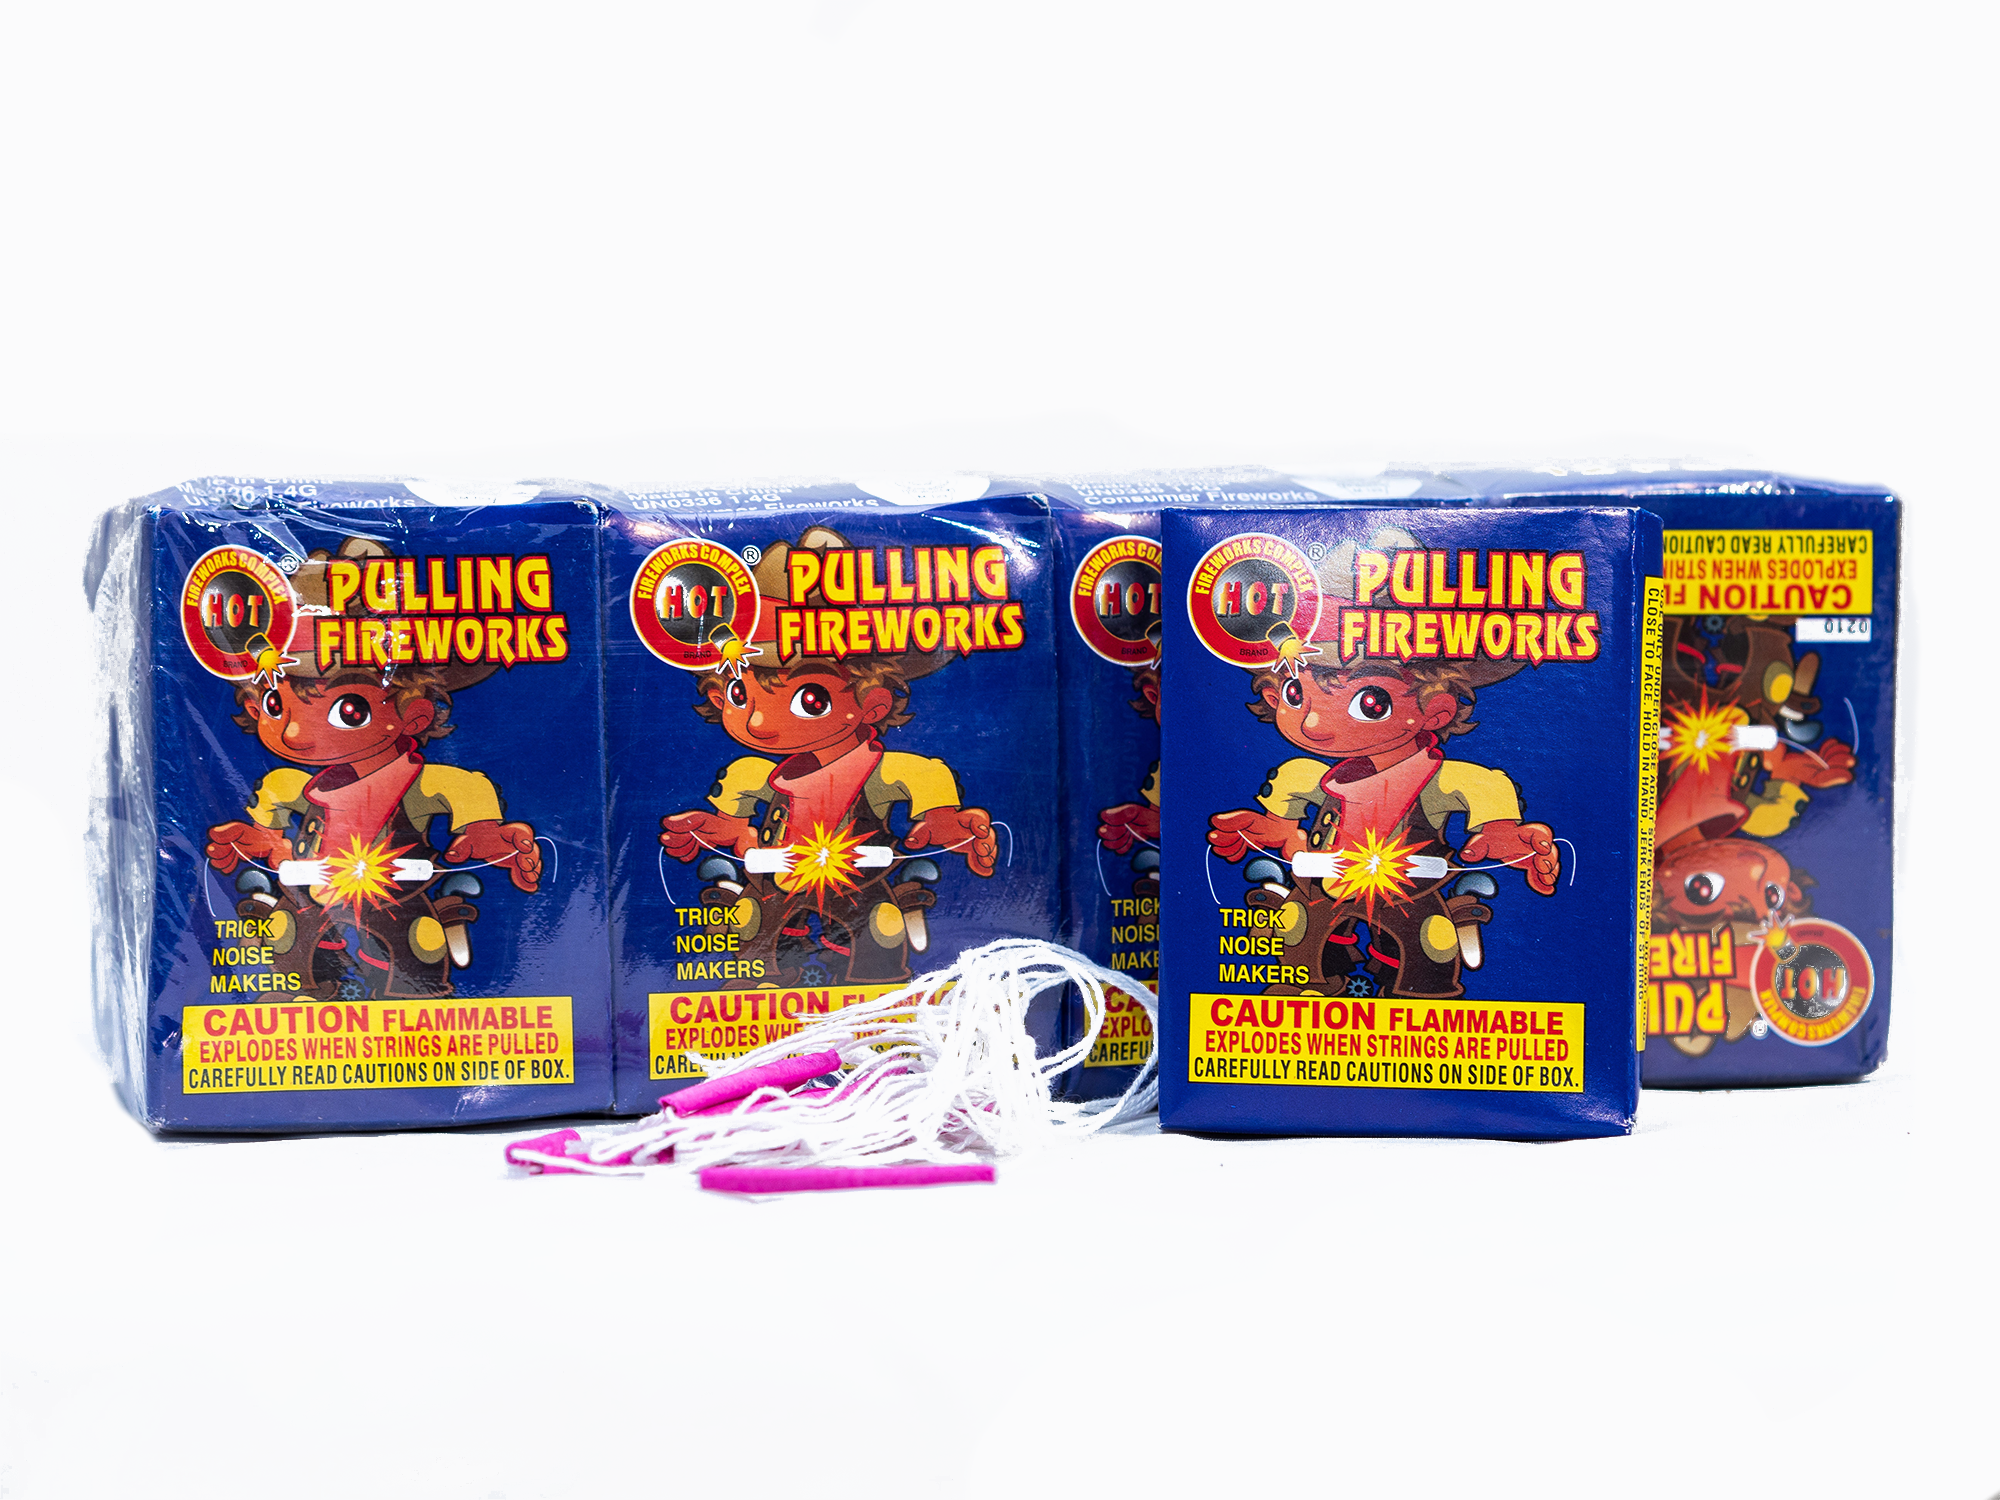 Booby Traps / Pulling Firework (Buy 1 get 1 Free)